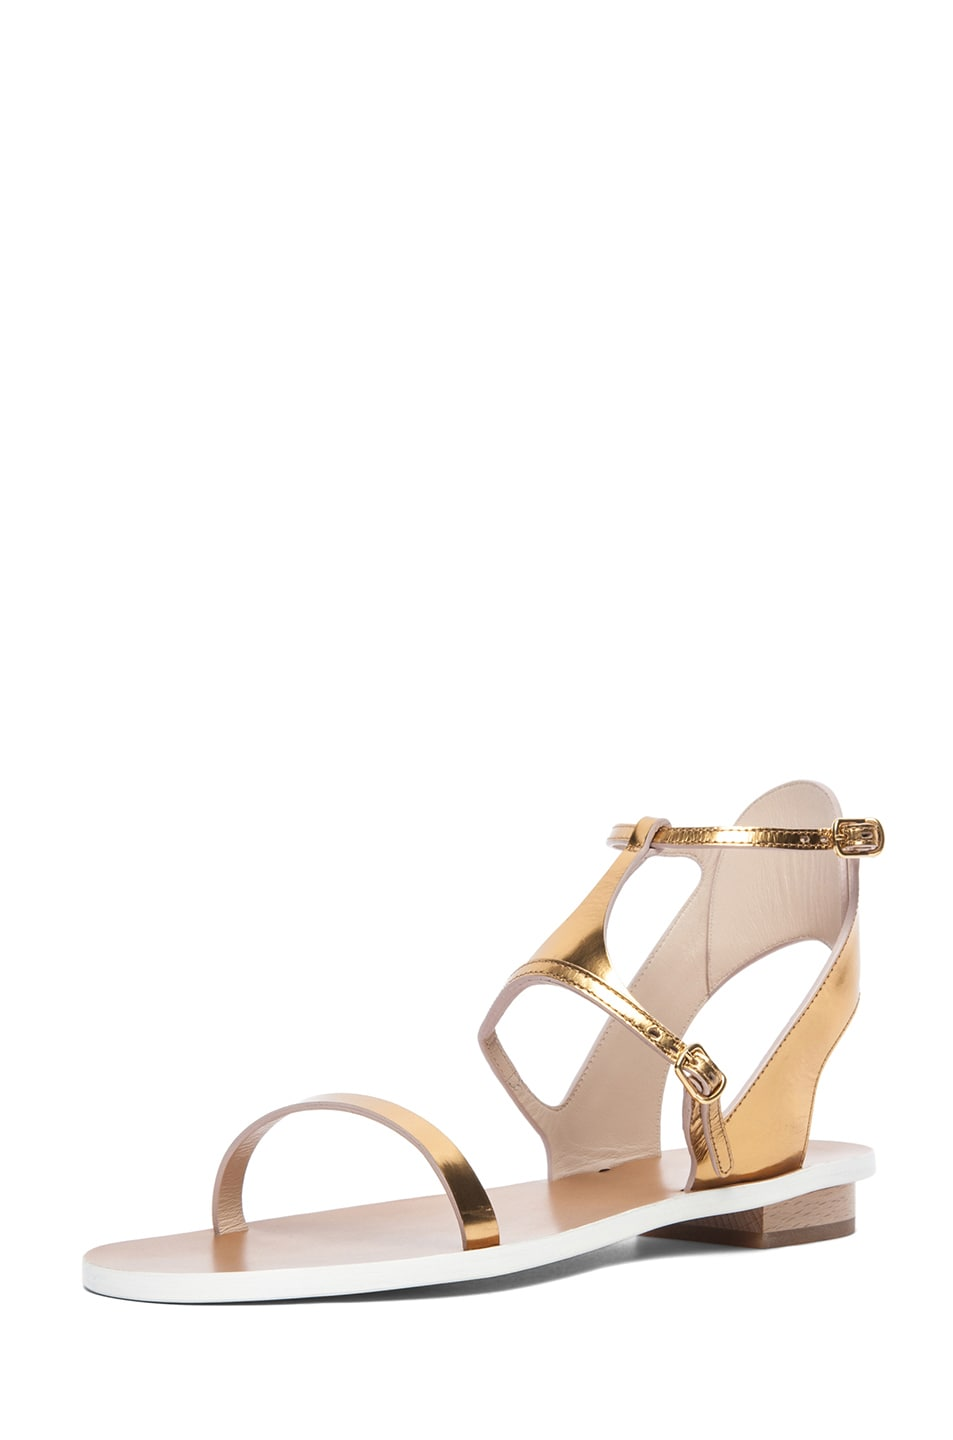 Image 2 of Chloe Metallic Leather Runway Sandals in Gold